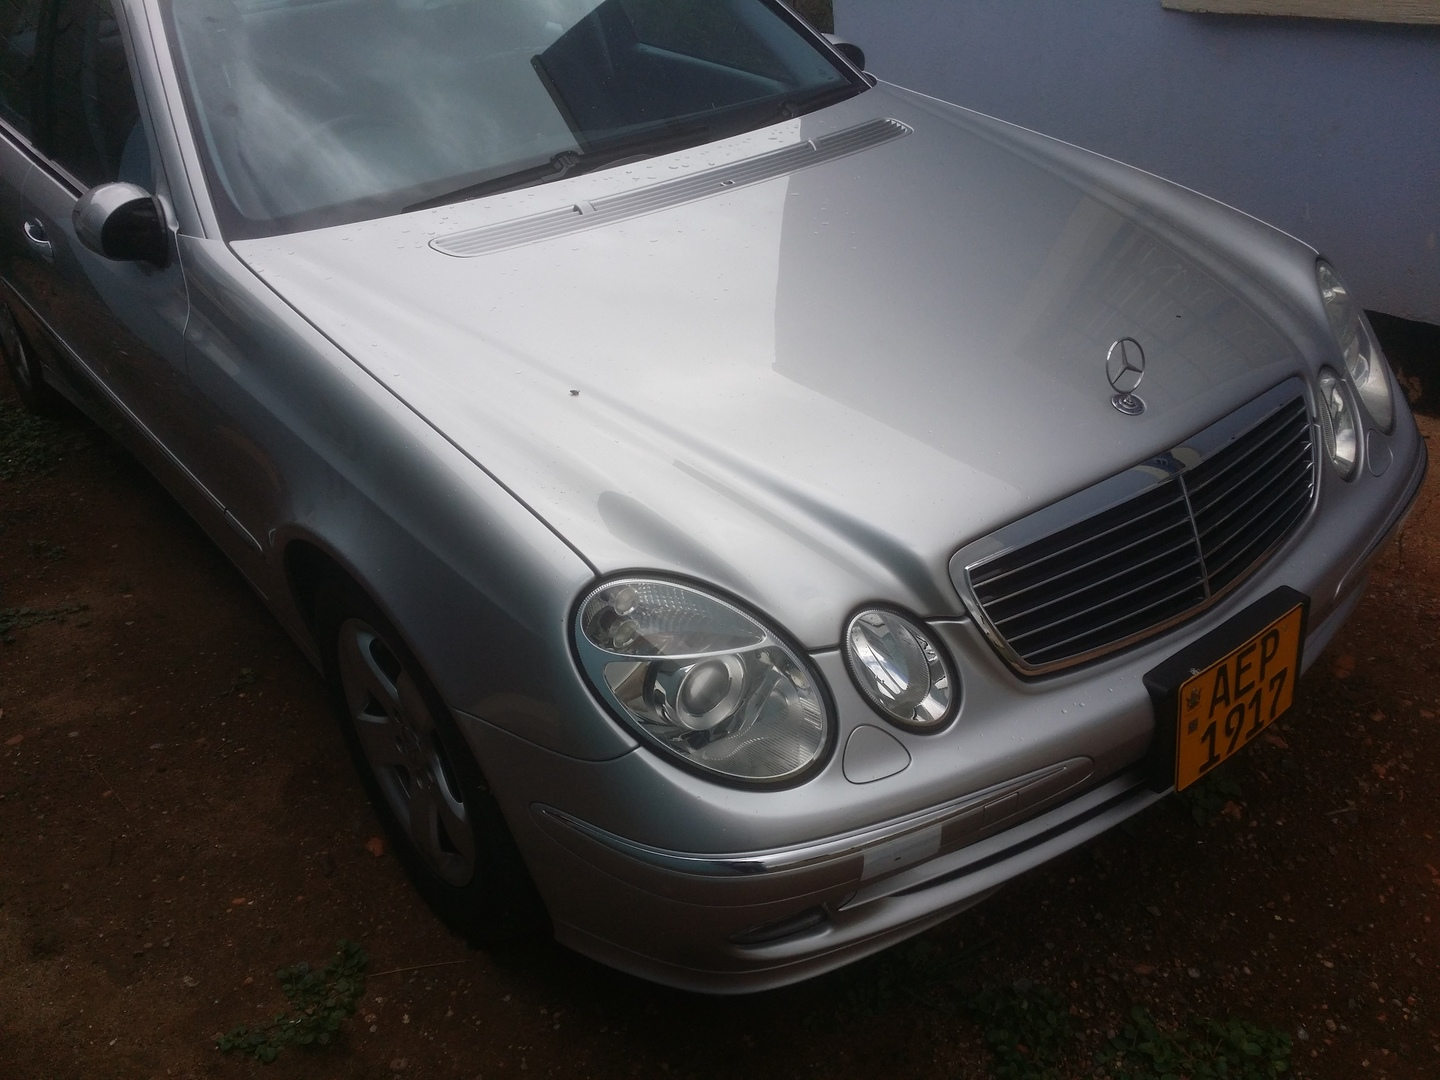 Best Price Used MERCEDES-BENZ E-CLASS for Sale - Japanese Used Cars